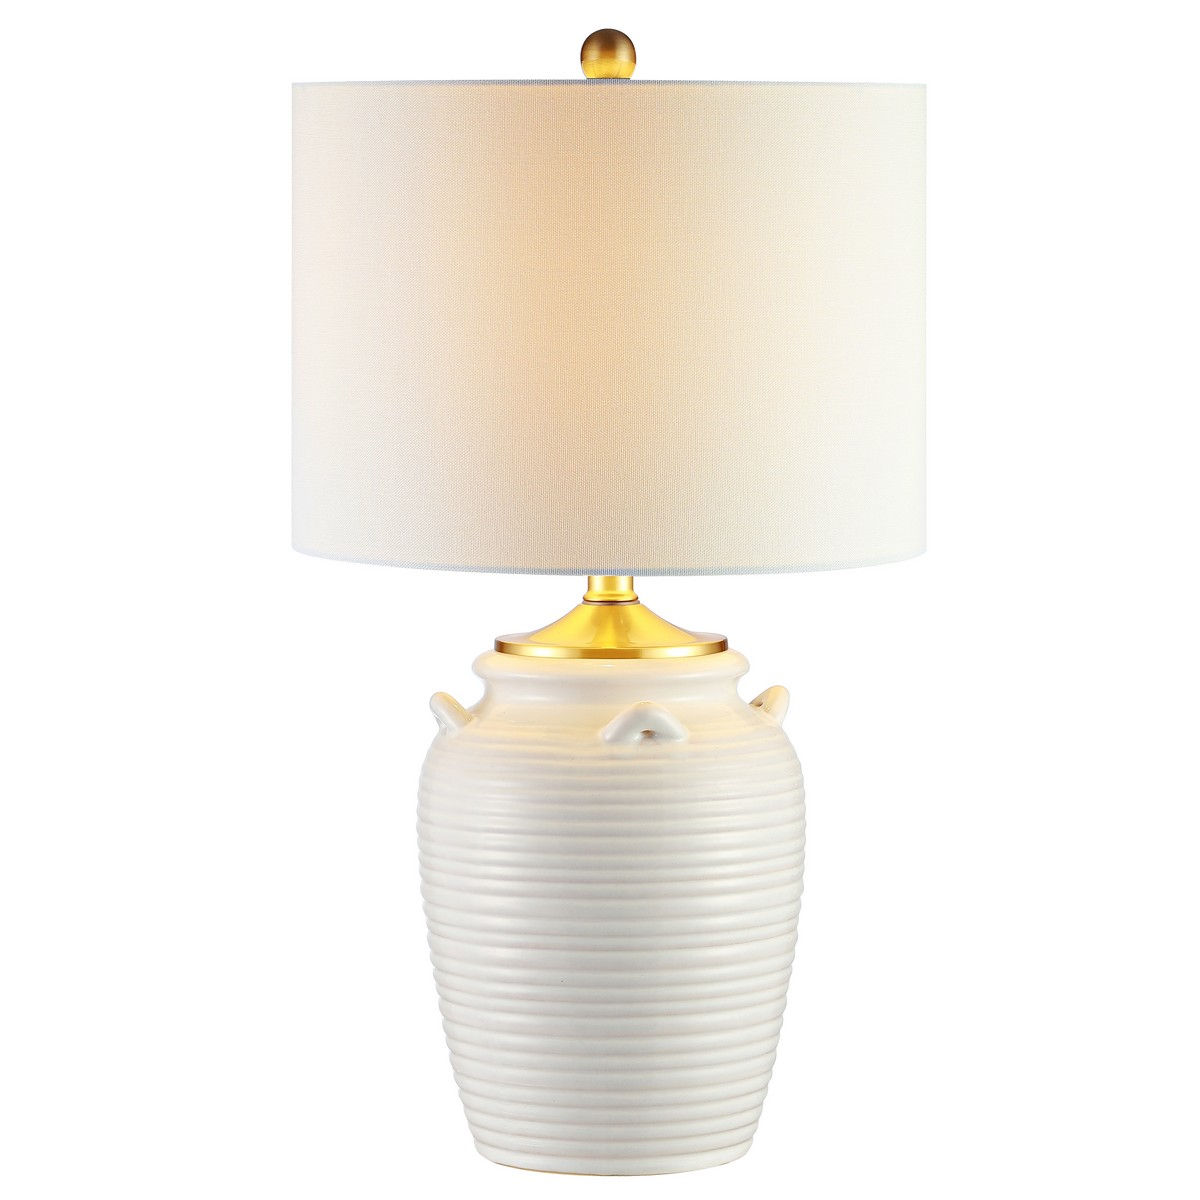 Tbl4243a Table Lamps Lighting By Safavieh